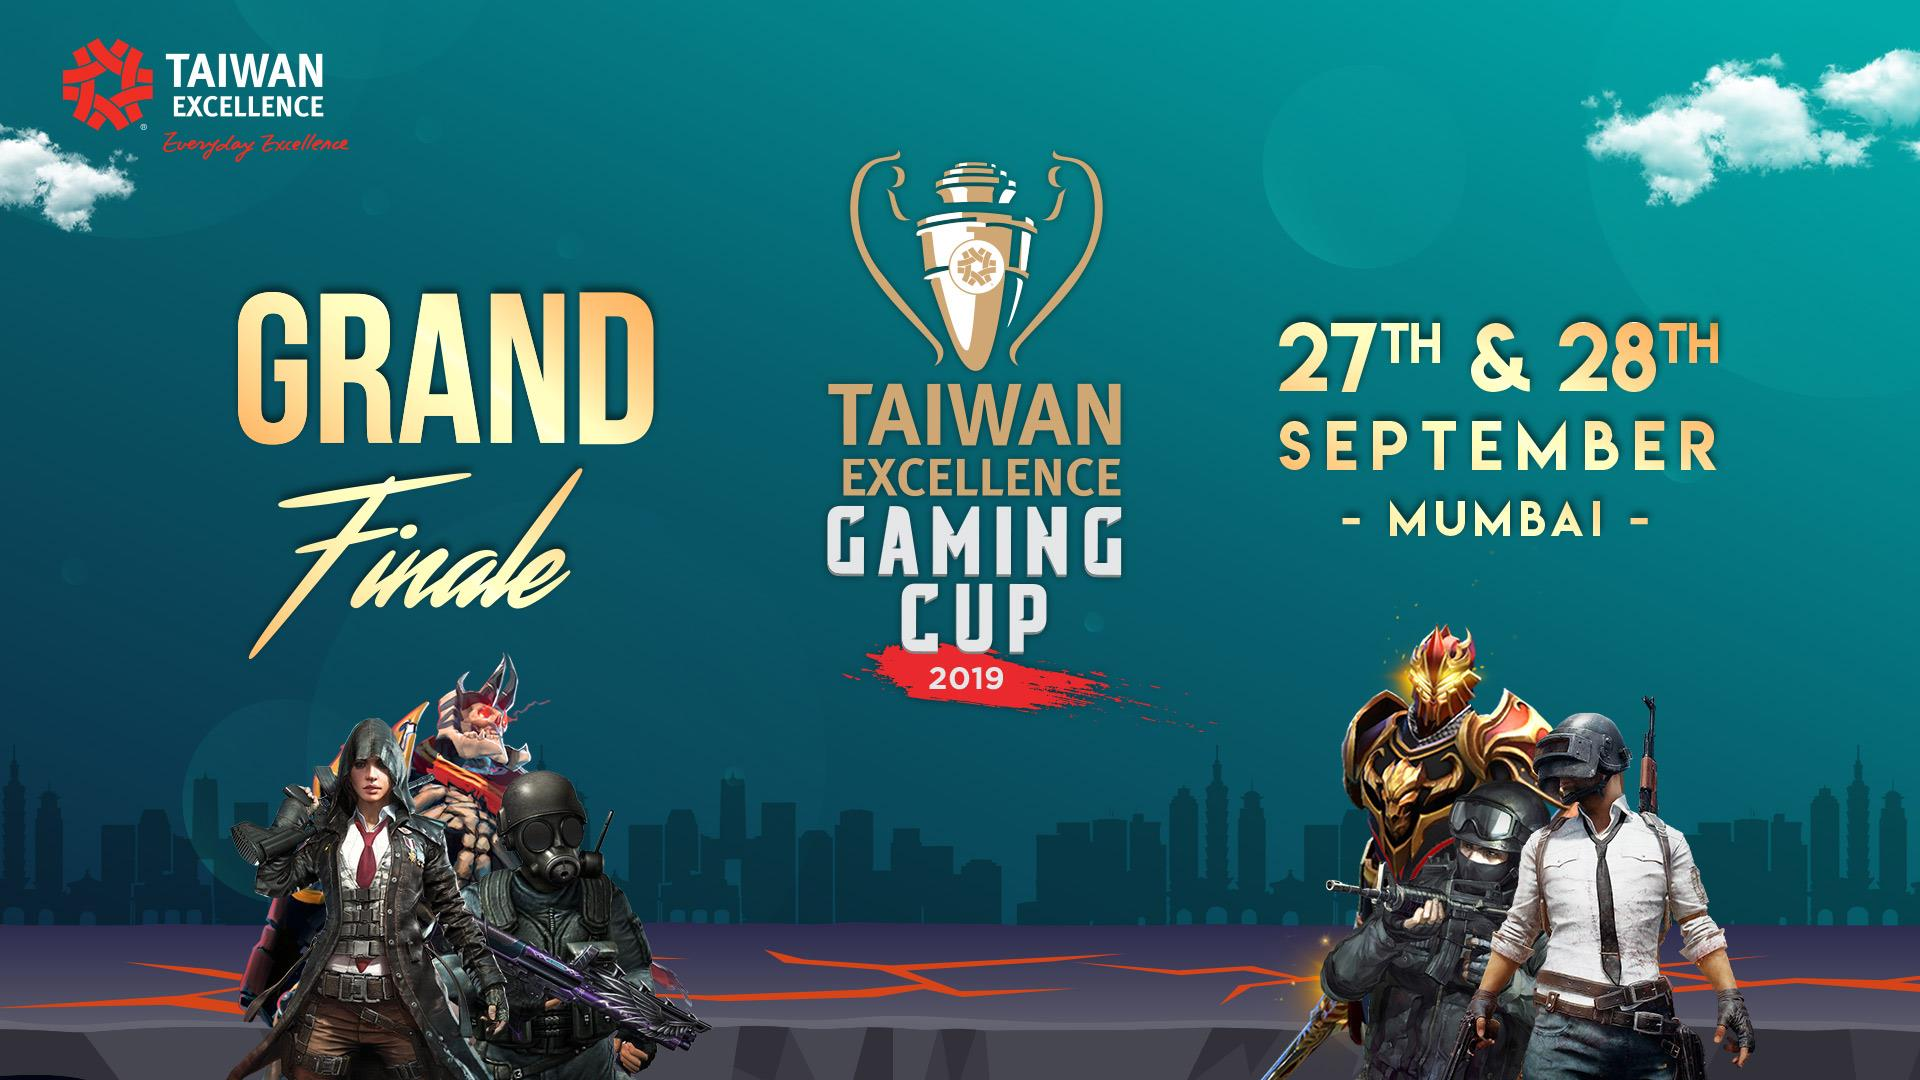 Taiwan Excellence Gaming Cup 2019